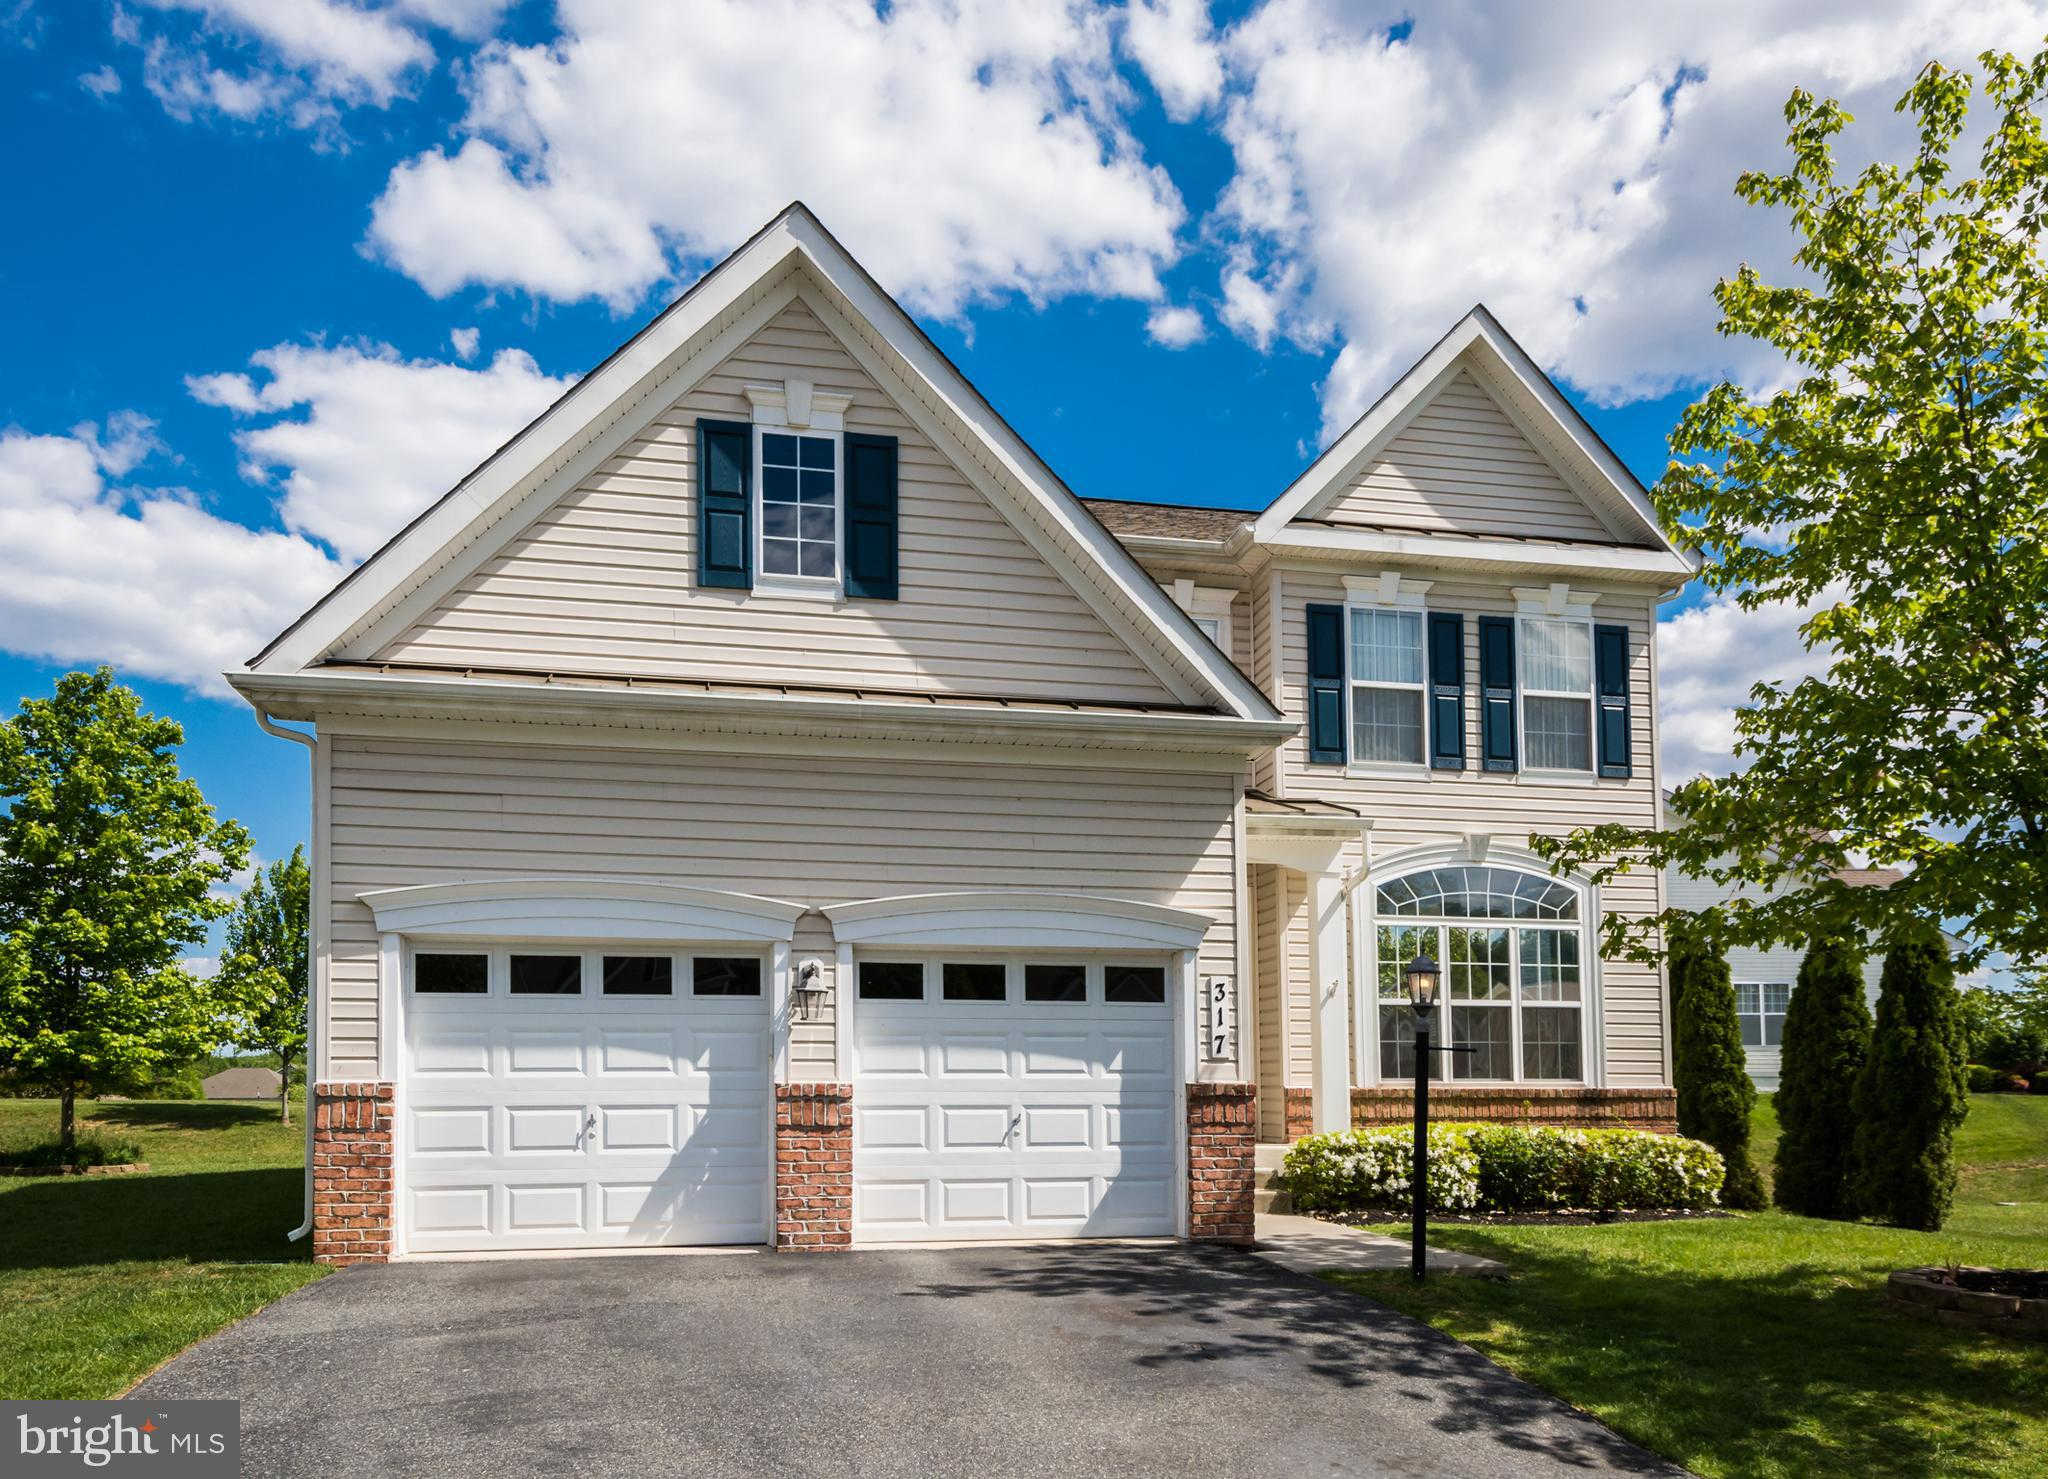 317 Summer Squall Court, Havre DE Grace, MD 21078 now has a new price of $469,900!